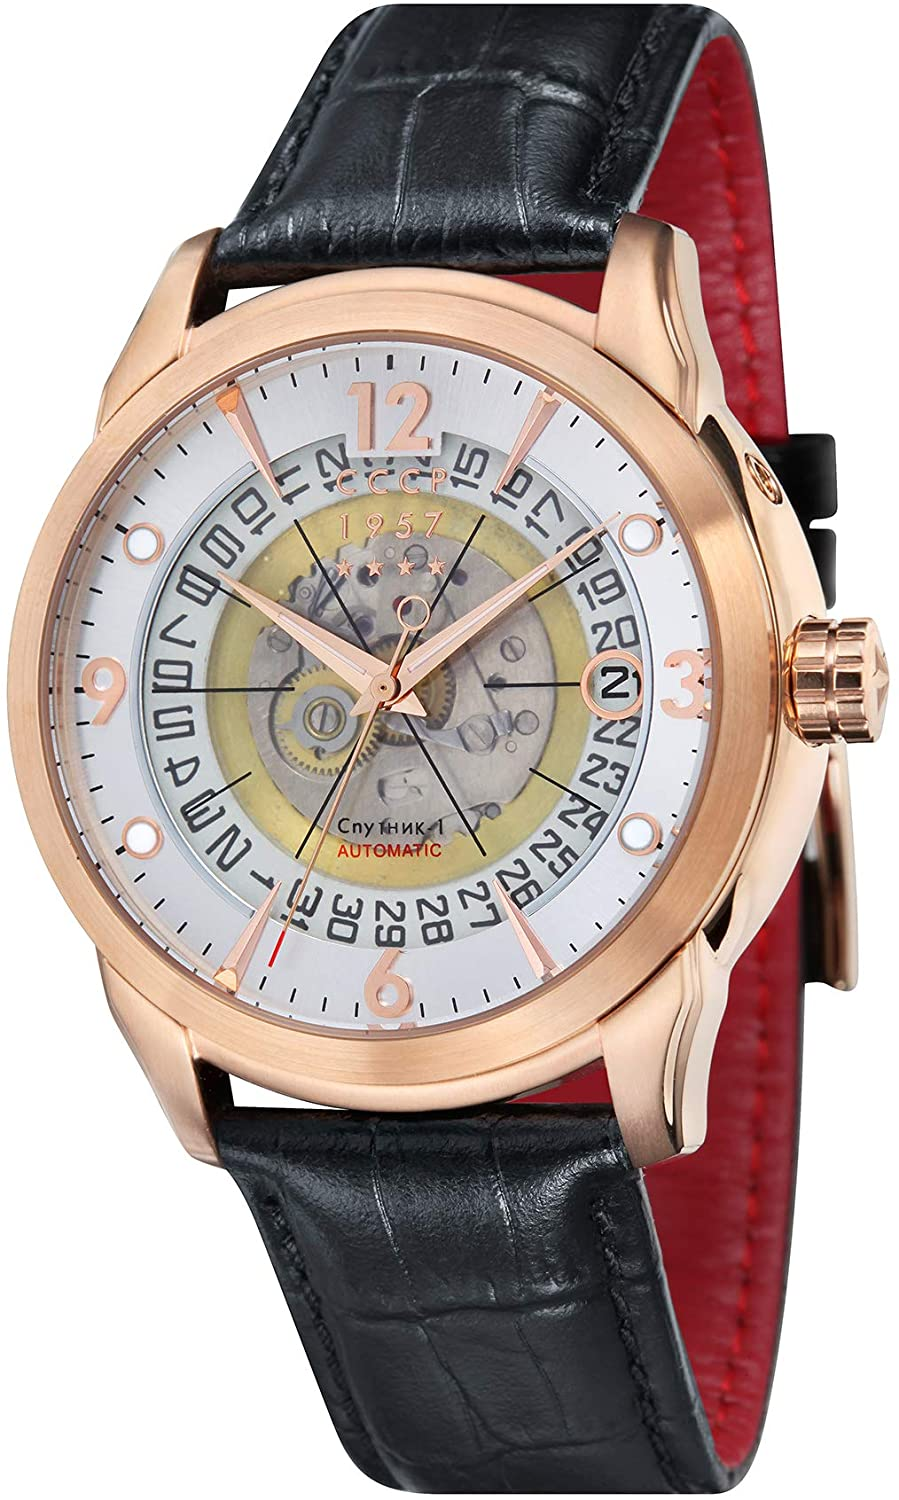 CCCP Sputnik 1 Leather Watch - CP-7001-05